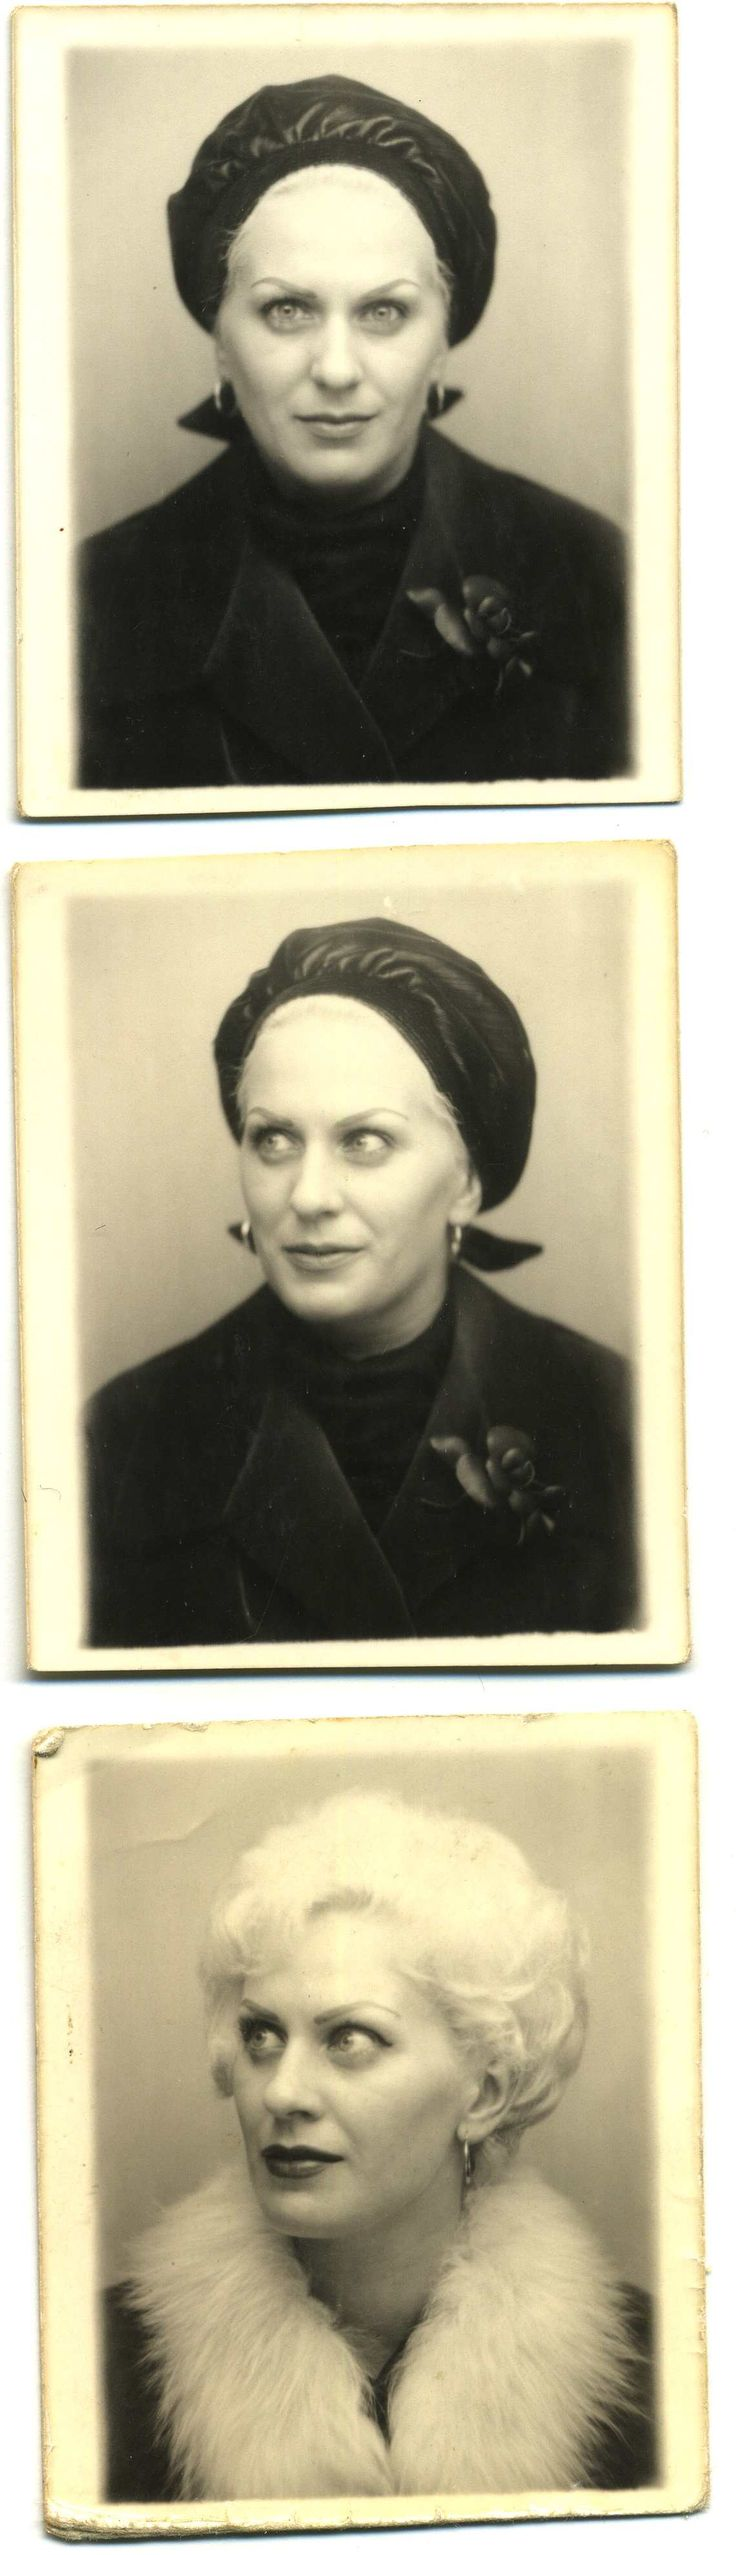 Myra Hindley's mother Nellie Hindley.